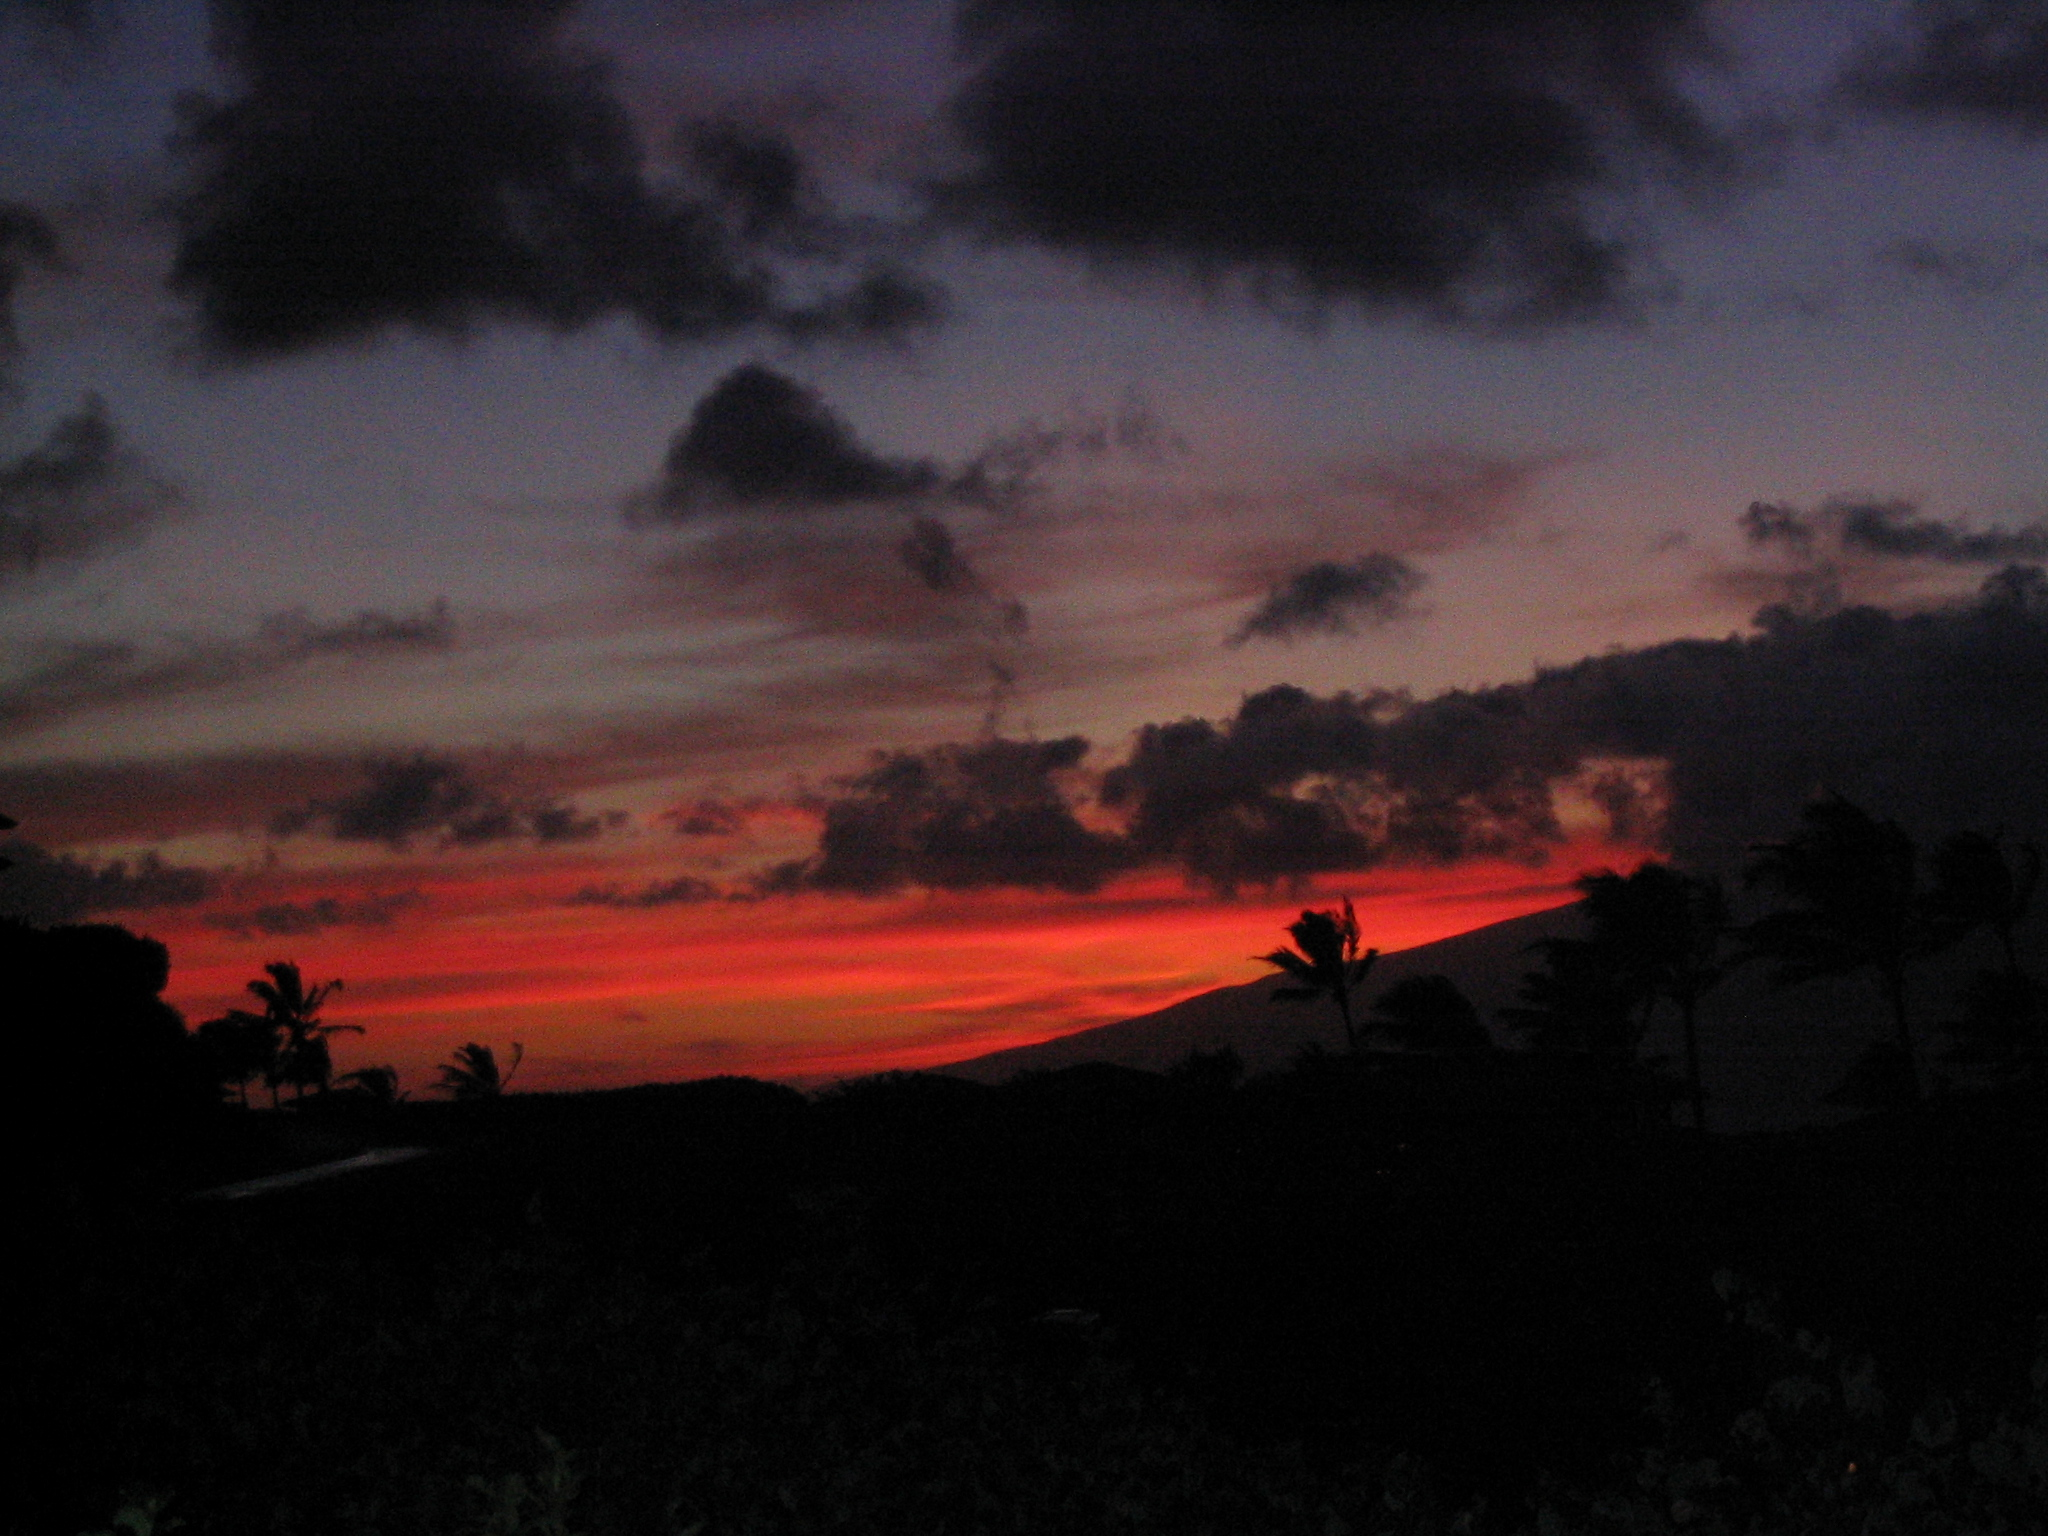 Maui sunset from the main lanai